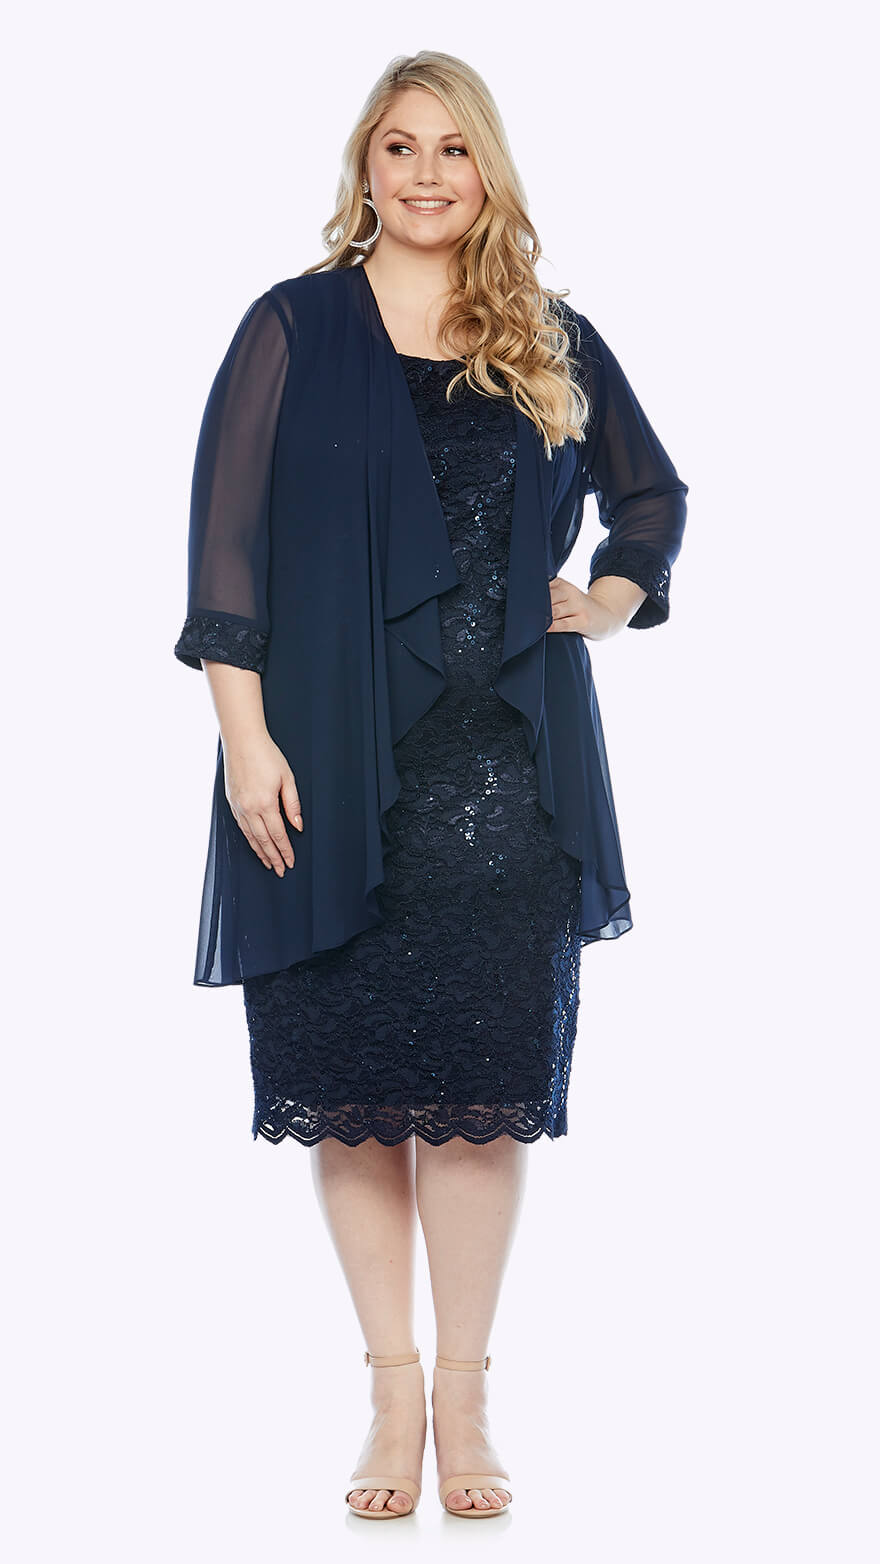 LJ0181 Mid-length sequin embroidered dress with scallop hem and 3/4 waterfall jacket and matching embroidered cuffs